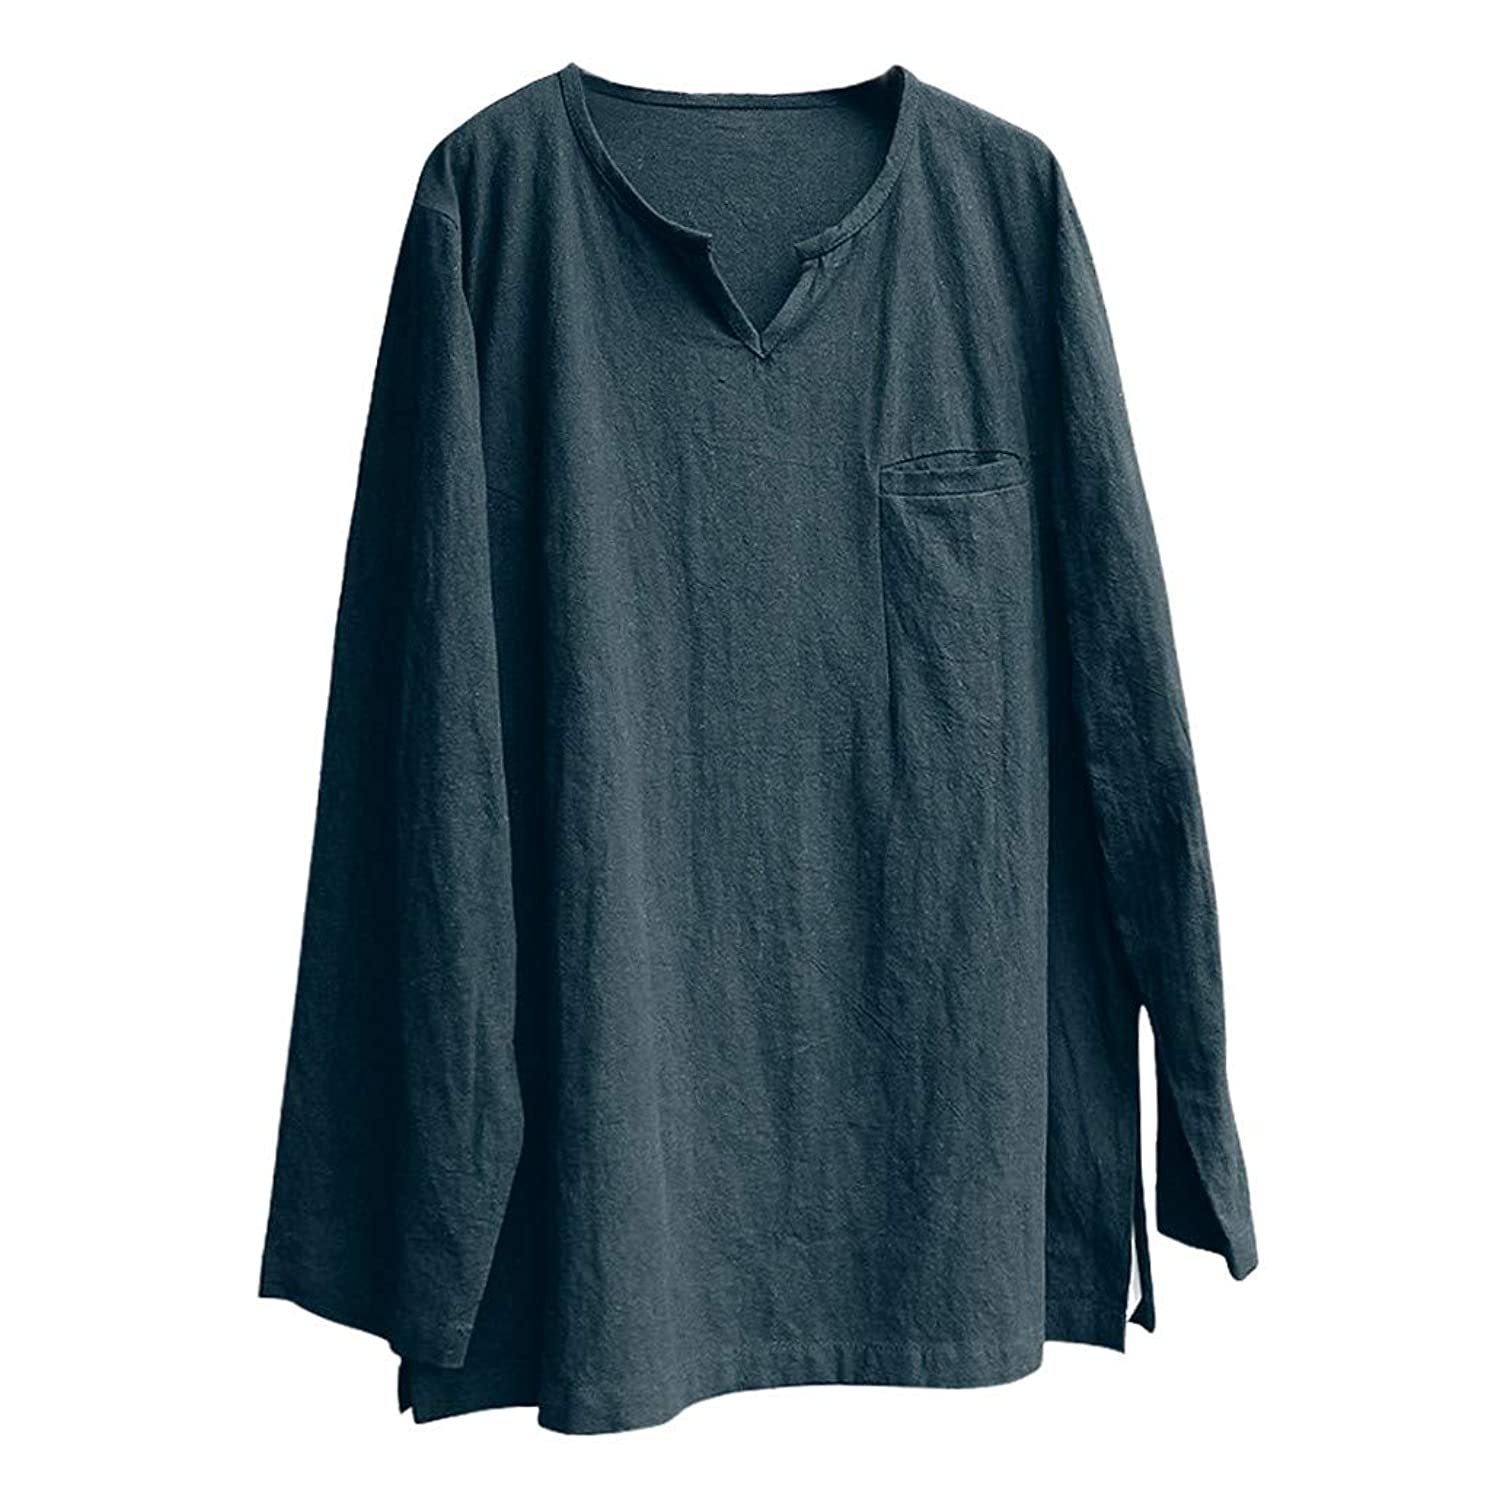 Mens Linen Shirts Tronet Mens Brief Breathable Comfy Solid Linen Long Sleeve Loose Casual T Shirt Blouse